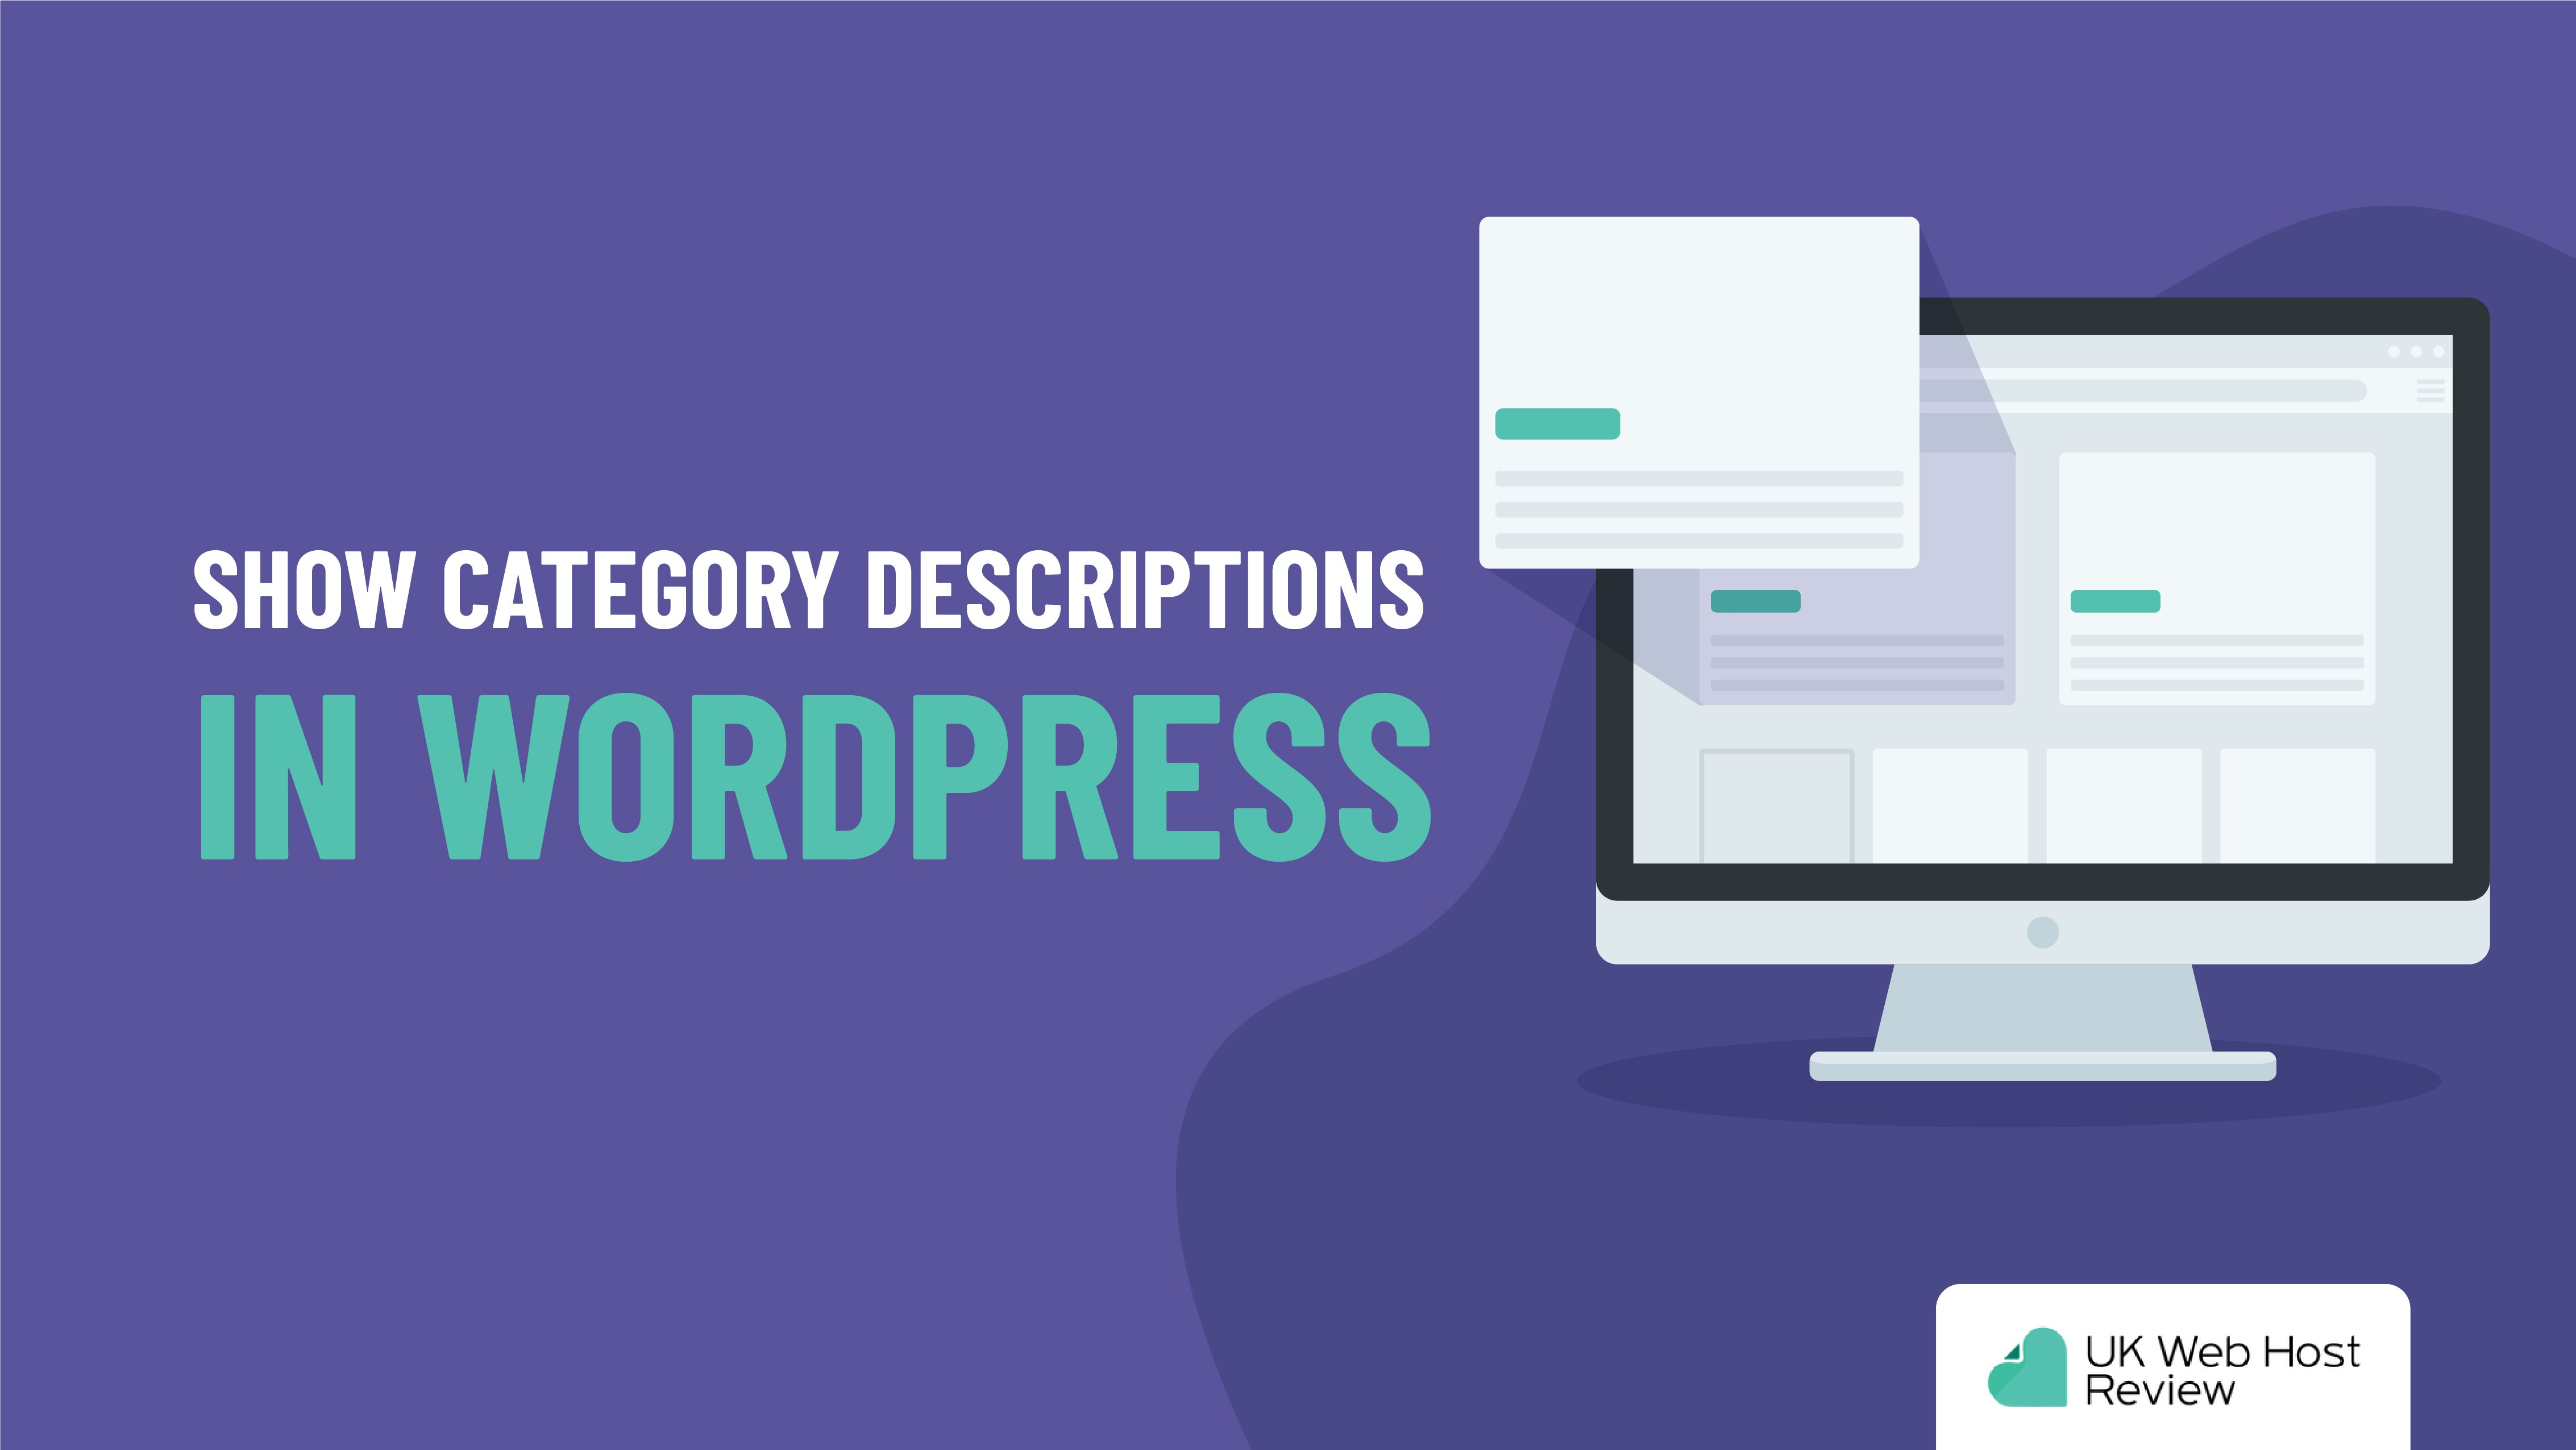 Show Category Descriptions in WordPress